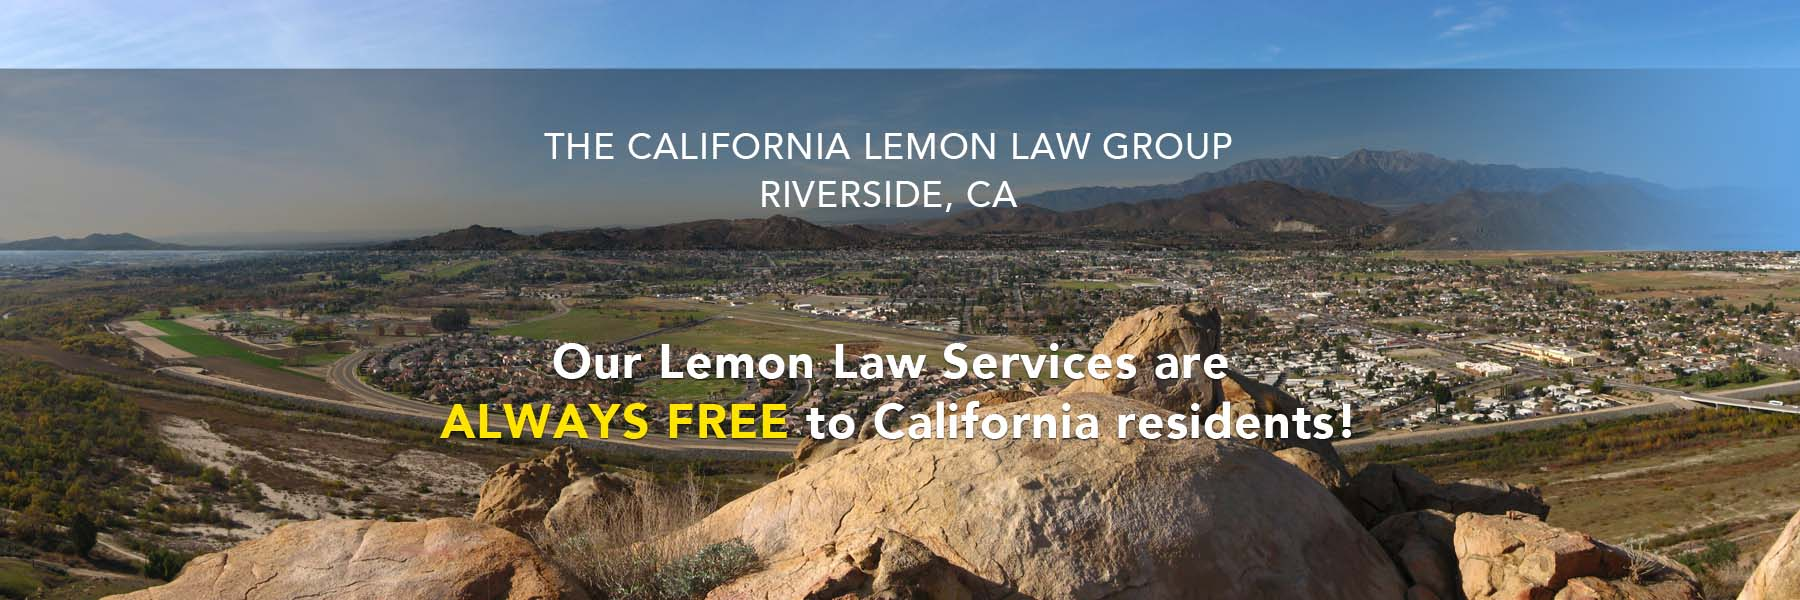 Lemon Law Attorney, Riverside, Temecula, Escondido, California